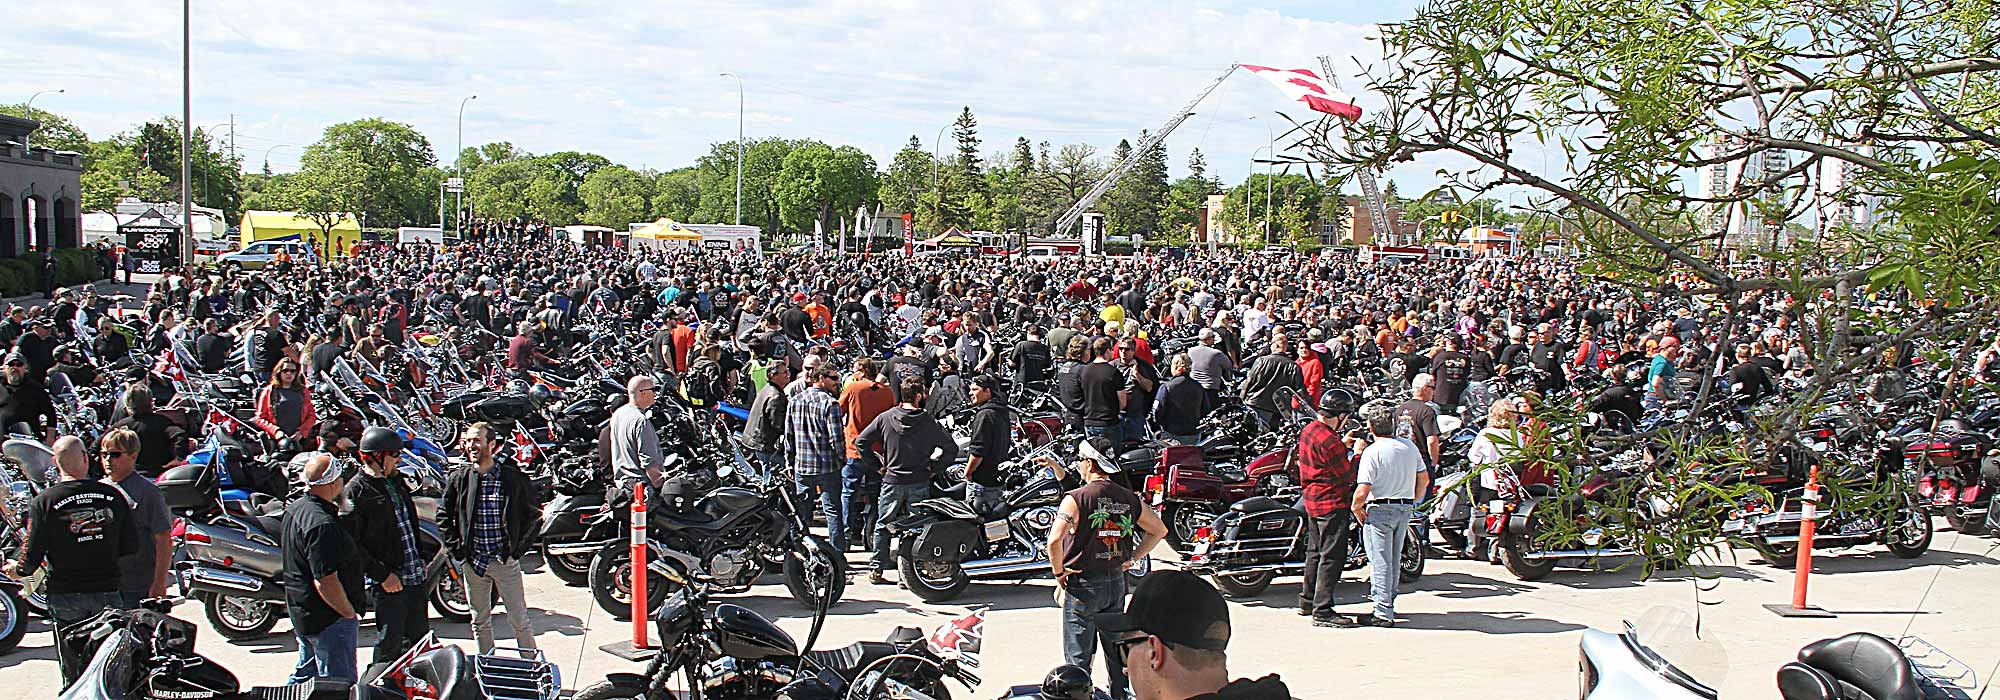 9TH ANNUAL TELUS MANITOBA MOTORCYCLE RIDE FOR DAD SETS RECORD FOR NUMBER OF REGISTERED RIDERS